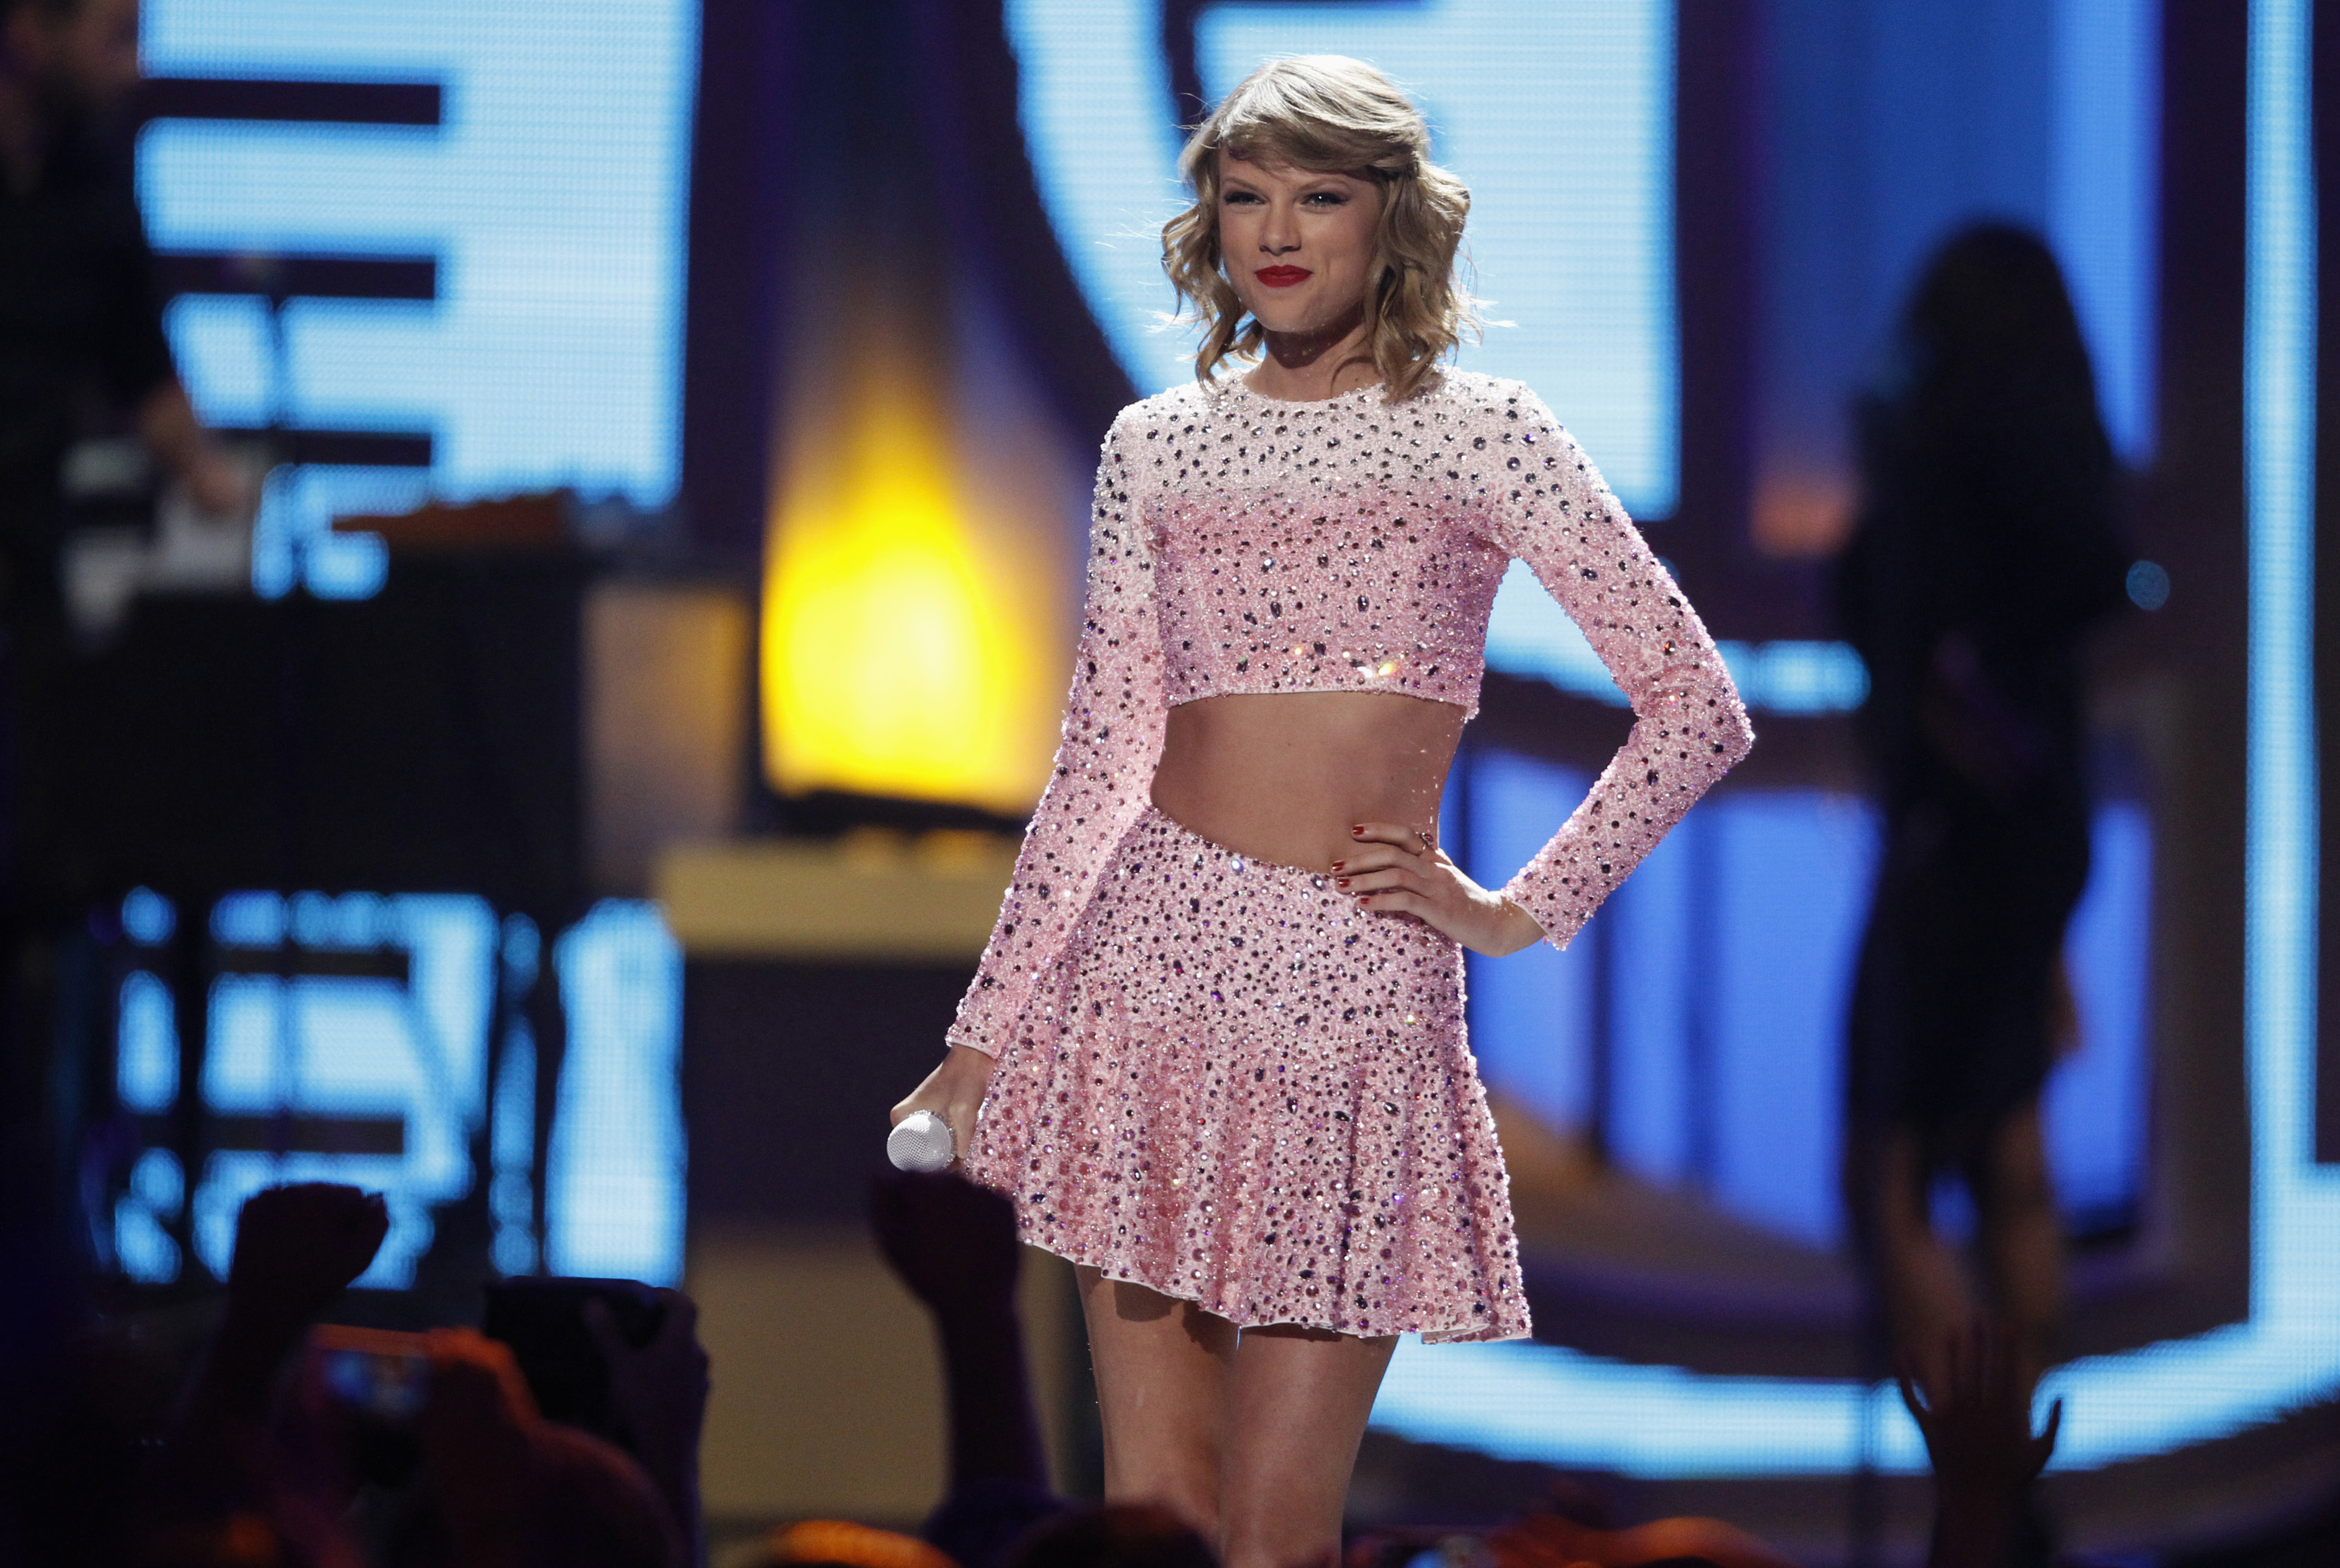 Singer Taylor Swift performs during the 2014 iHeartRadio Music Festival in Las Vegas, Nevada Sept. 19, 2014.